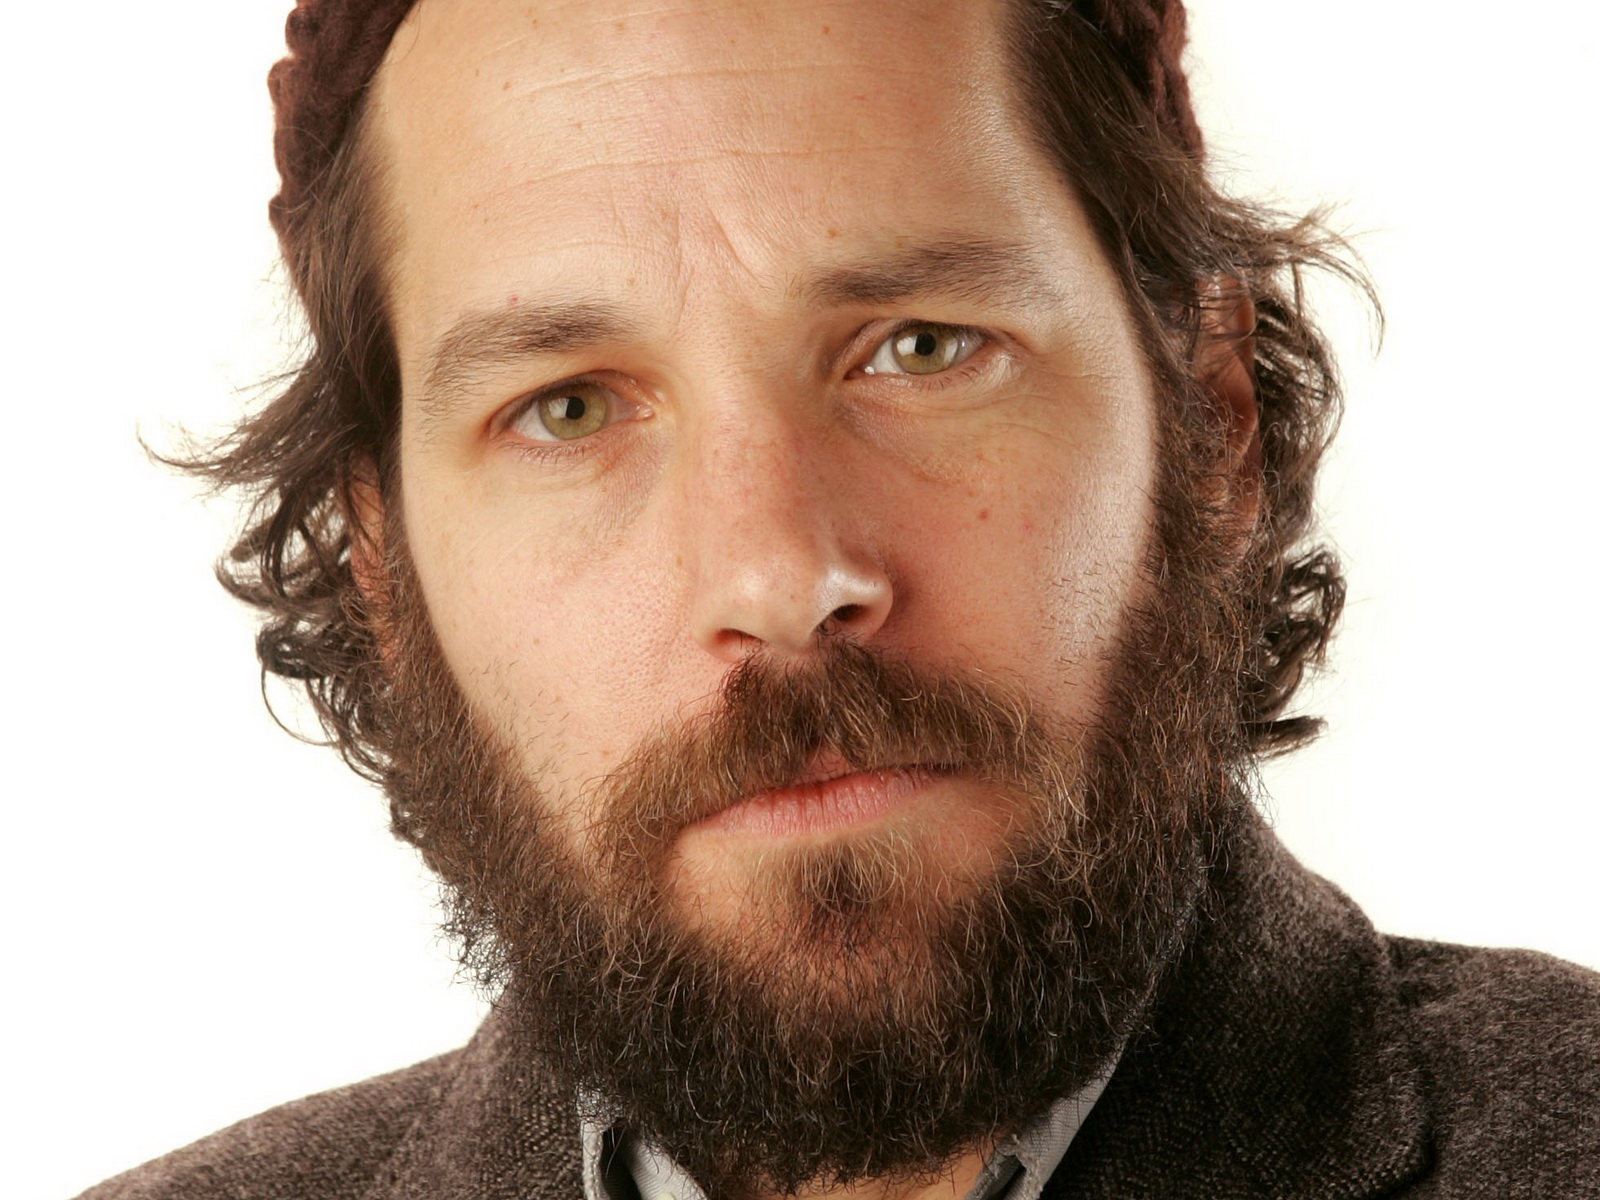 Paul Rudd Wallpaper 40452 1600x1200 px